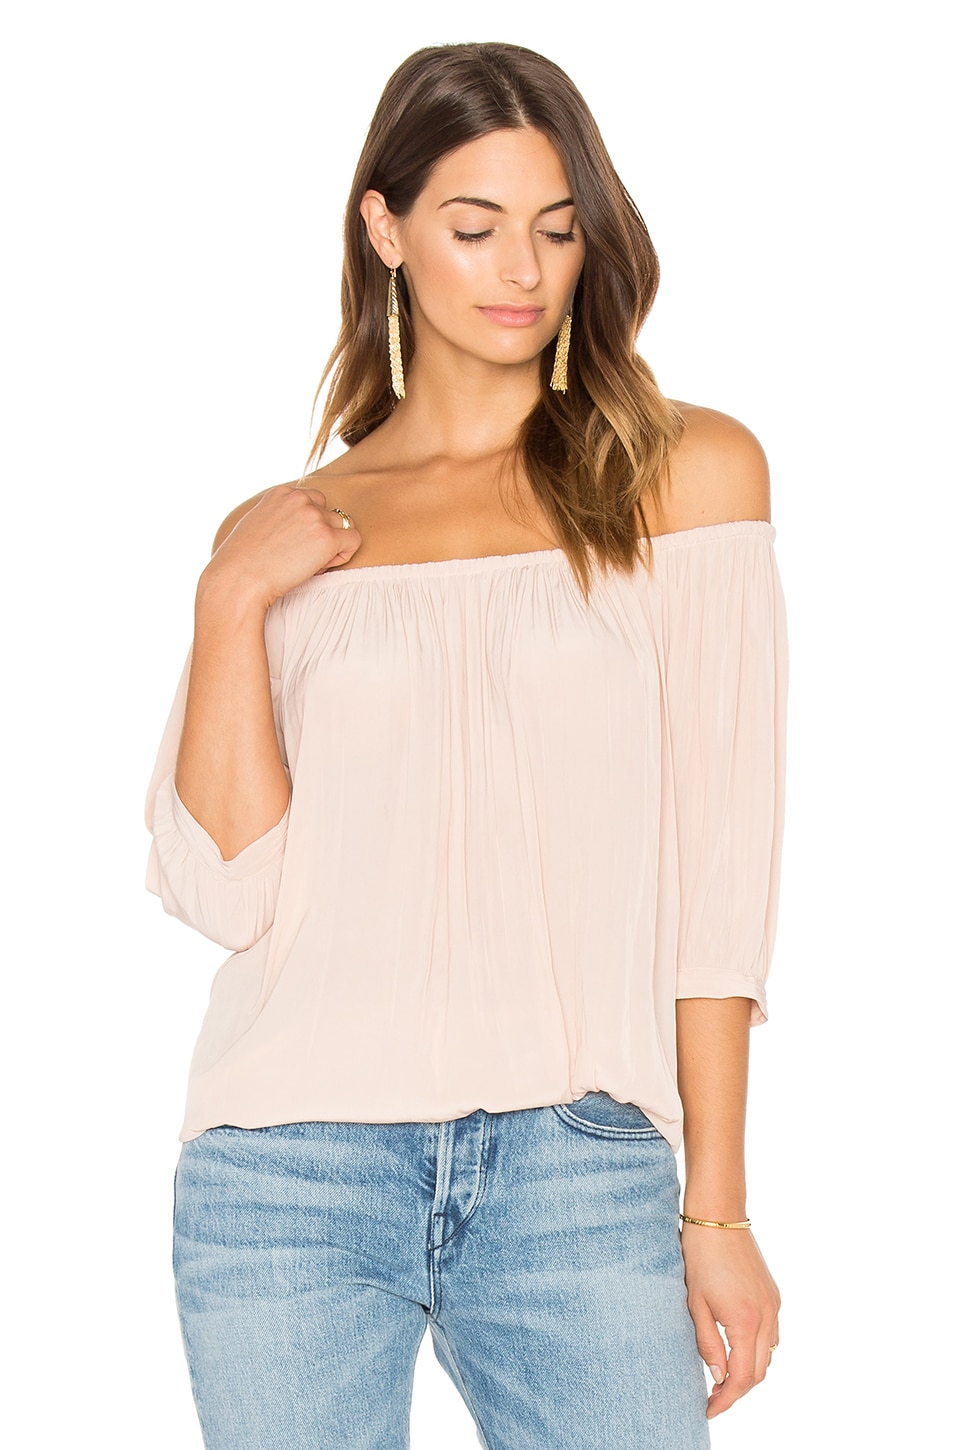 Gypset Blouse at REVOLVE